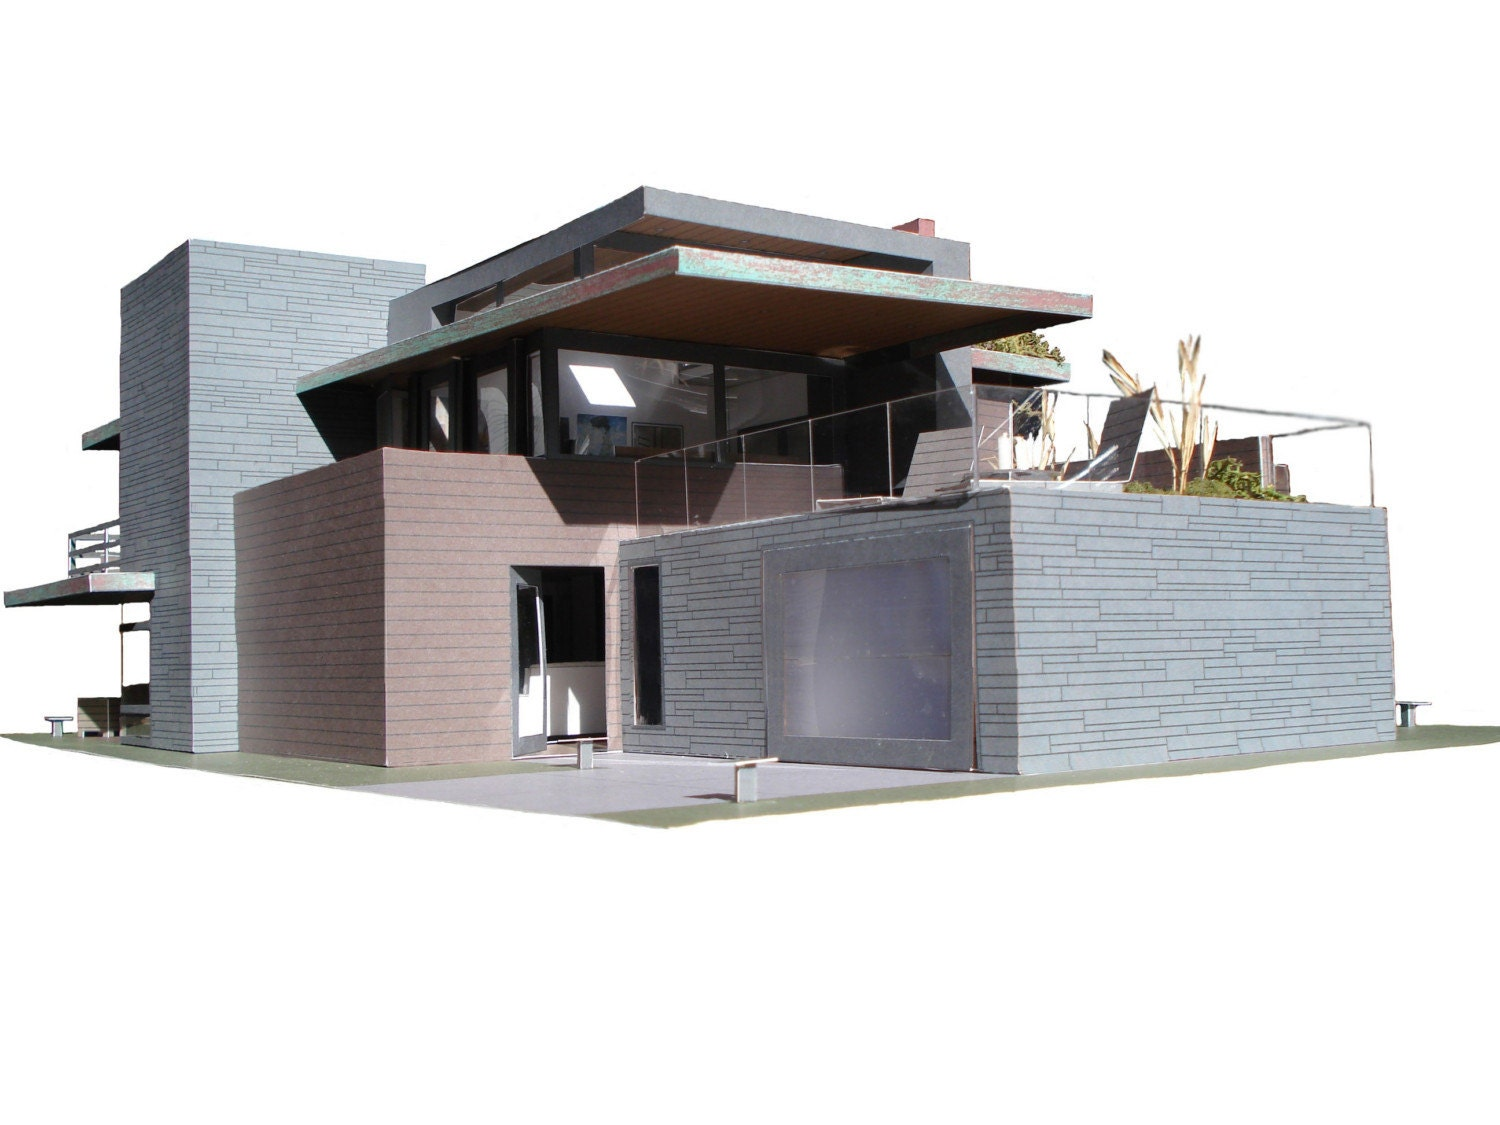 Architectural model kit for Architectural design kit home